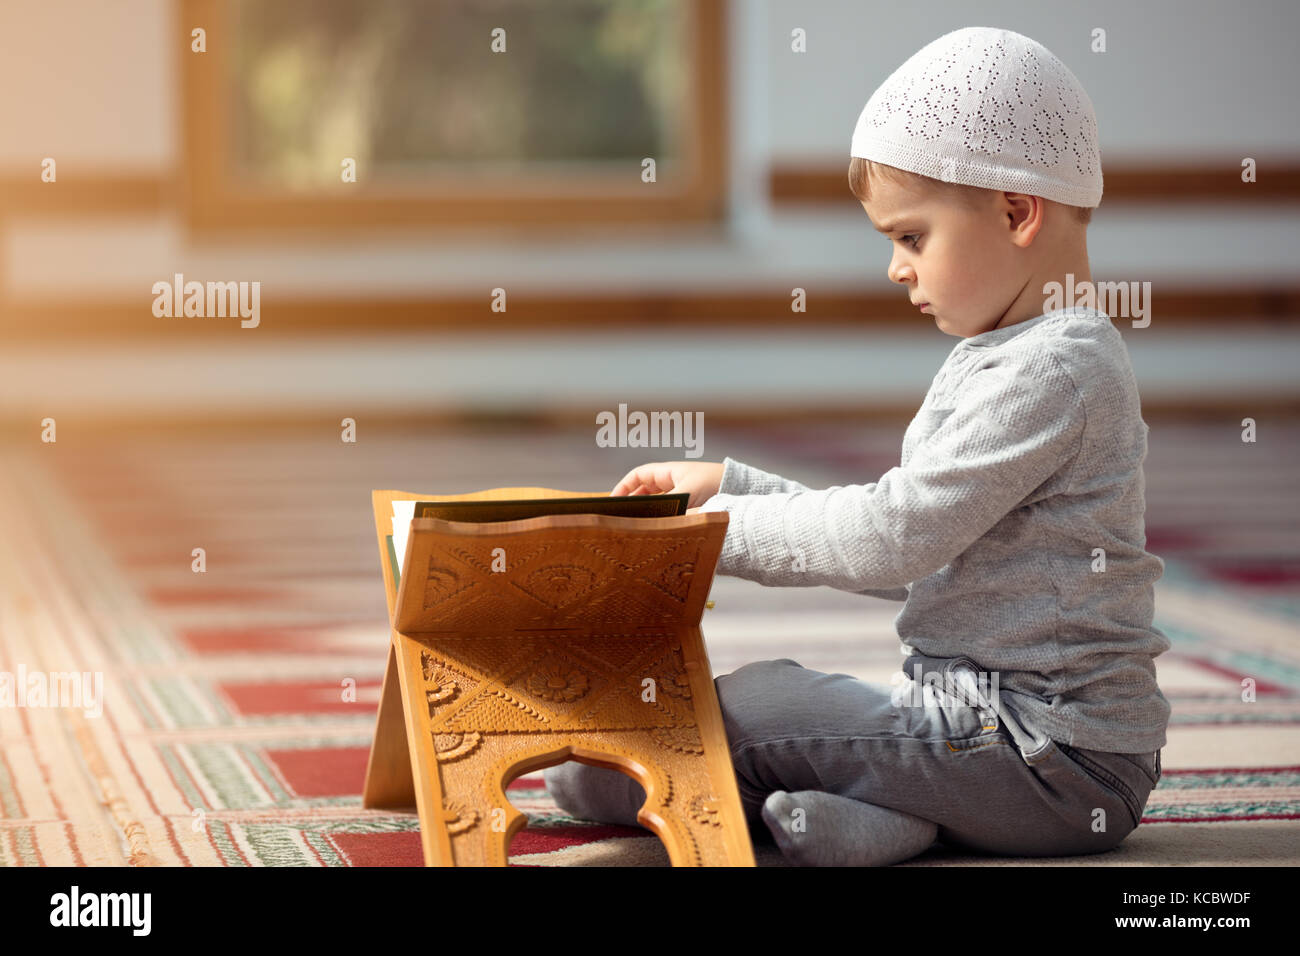 The Muslim child prays in the mosque, the little boy prays to God, Peace and love in the holy month of Ramadan. - Stock Image